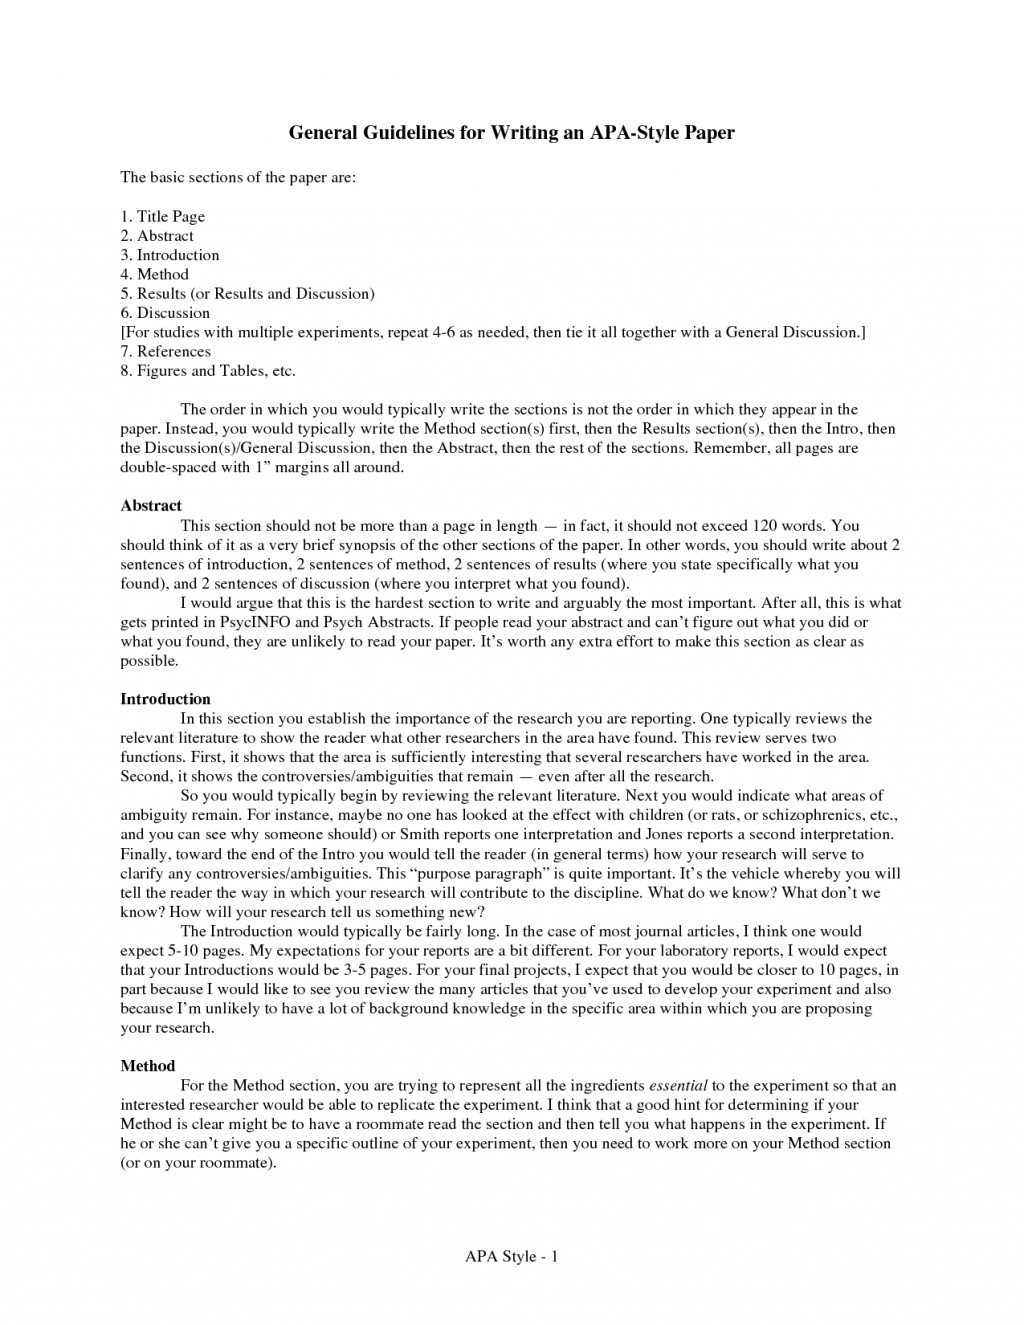 003 Research Paper Discussion Section Of Apa Best Style Apa-style Large